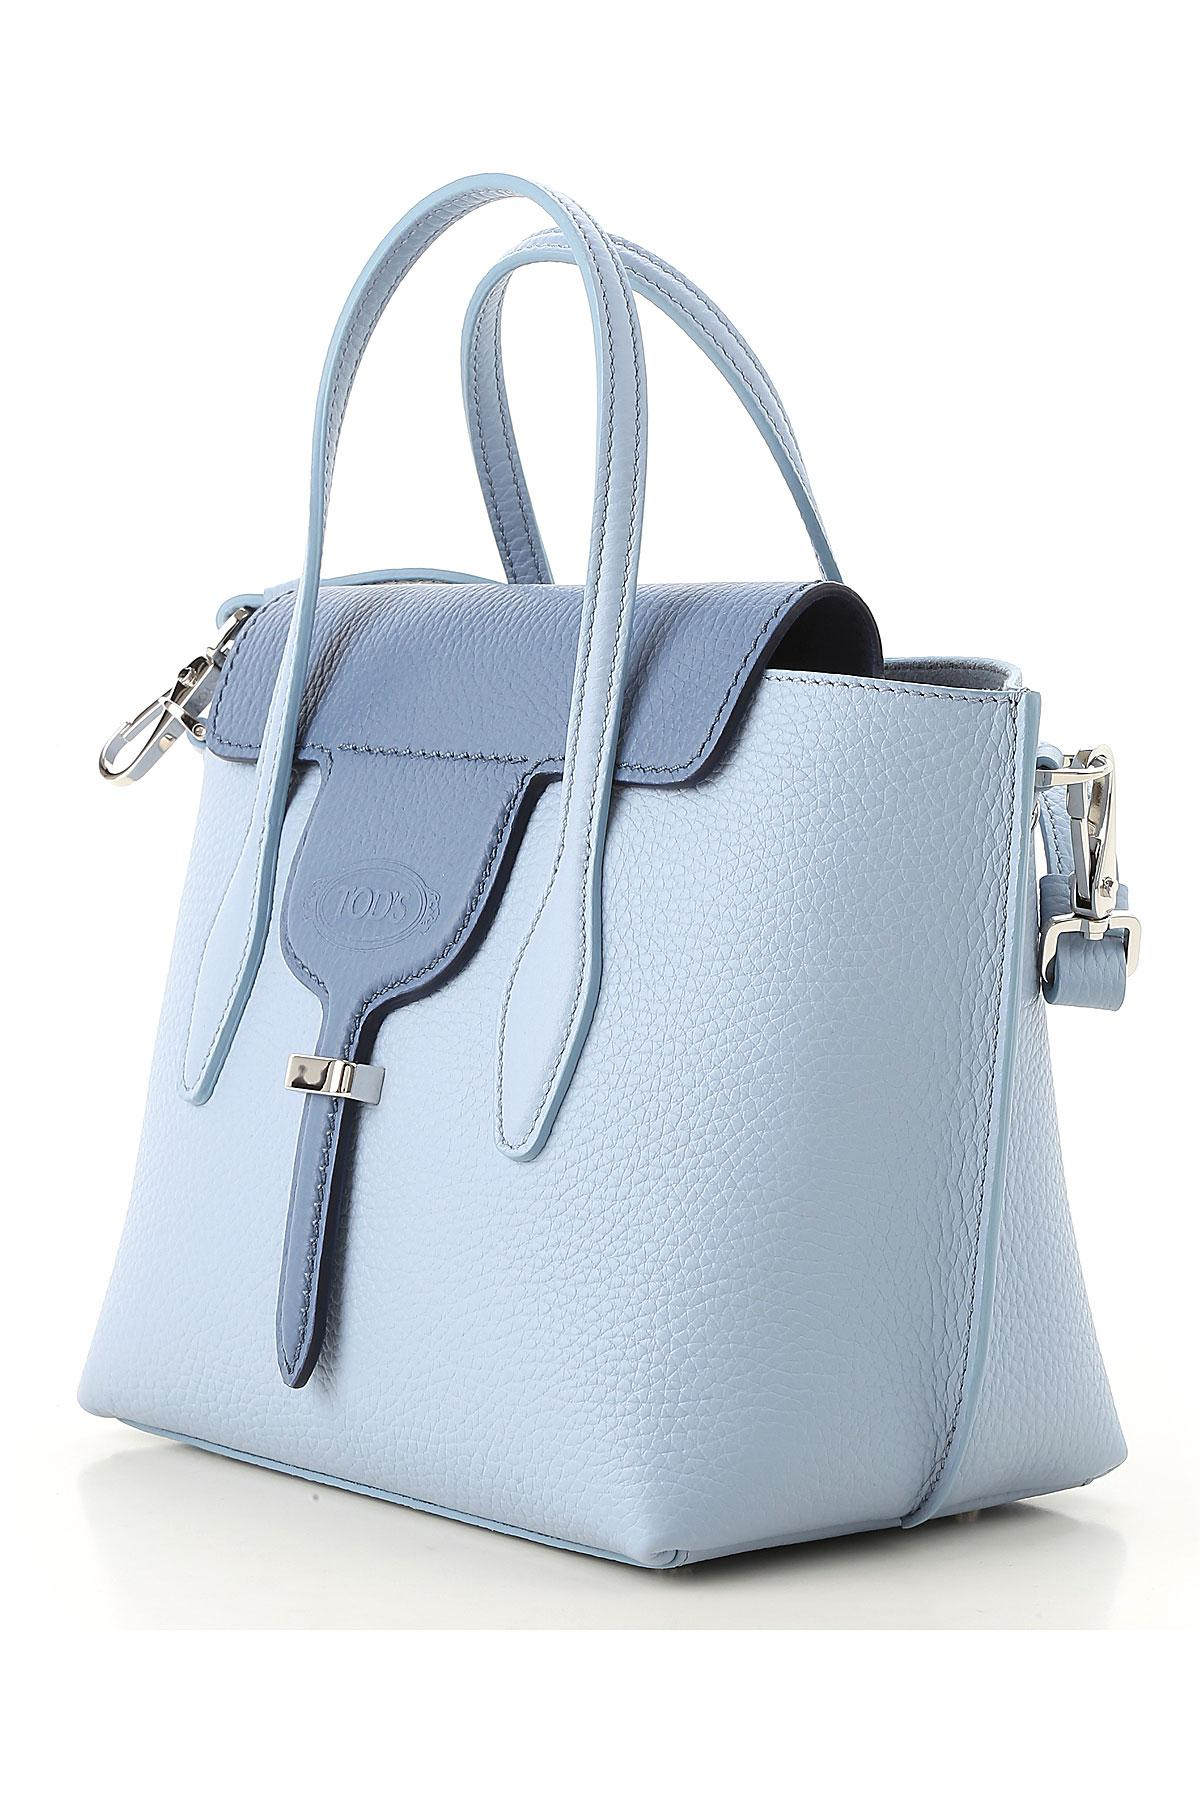 Tod's Leather Handbags in Blue